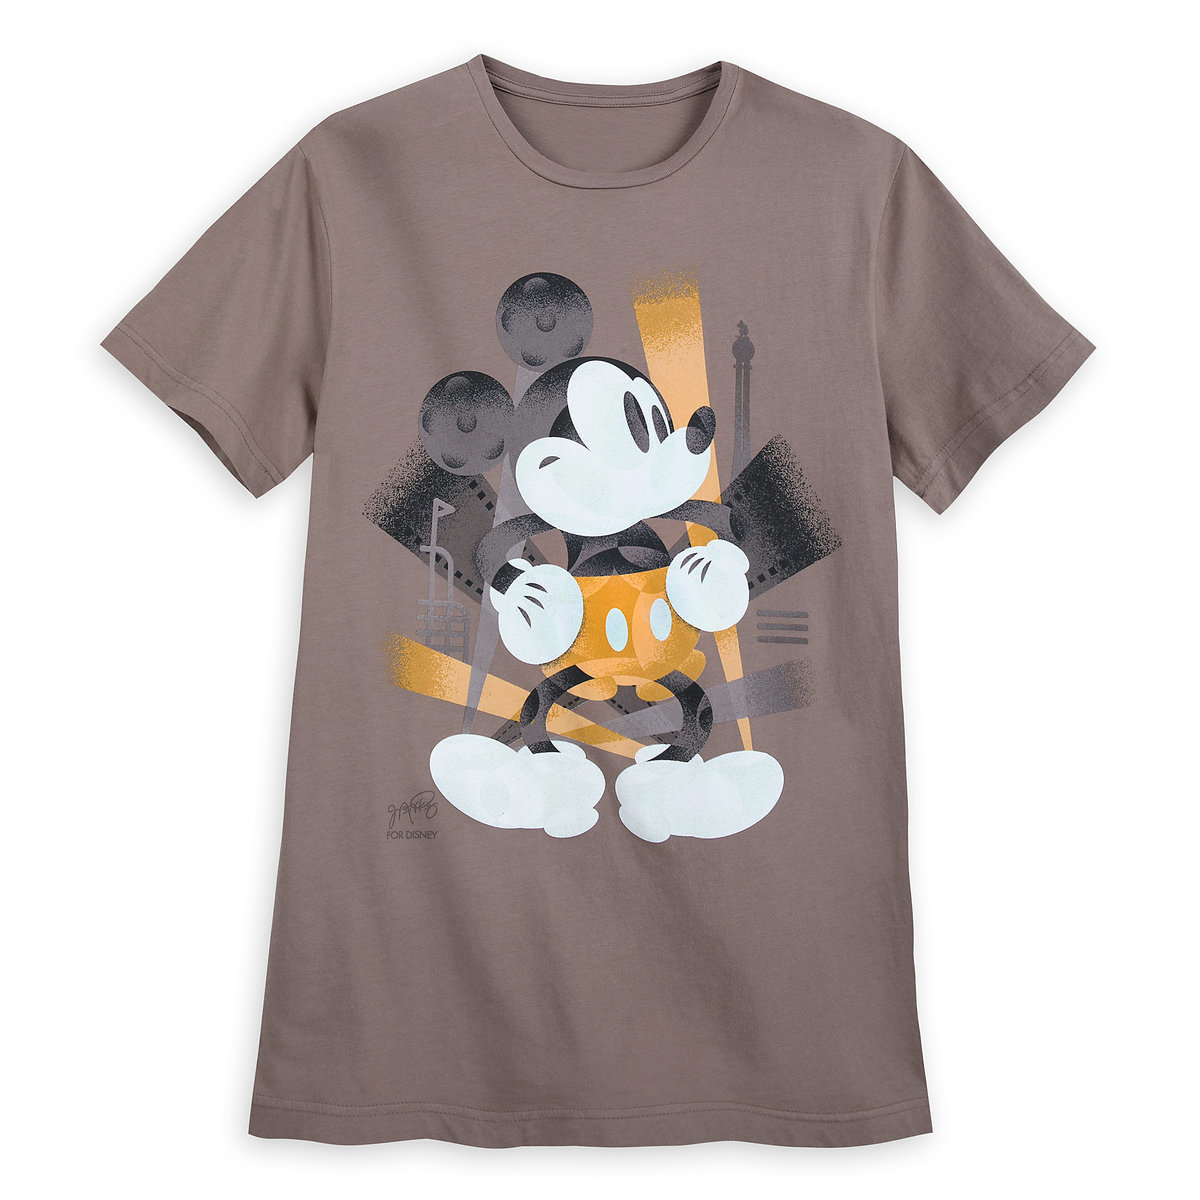 7ddffc35 Product Image of Mickey Mouse Disney Parks Artist Series T-Shirt for Men by  Mike